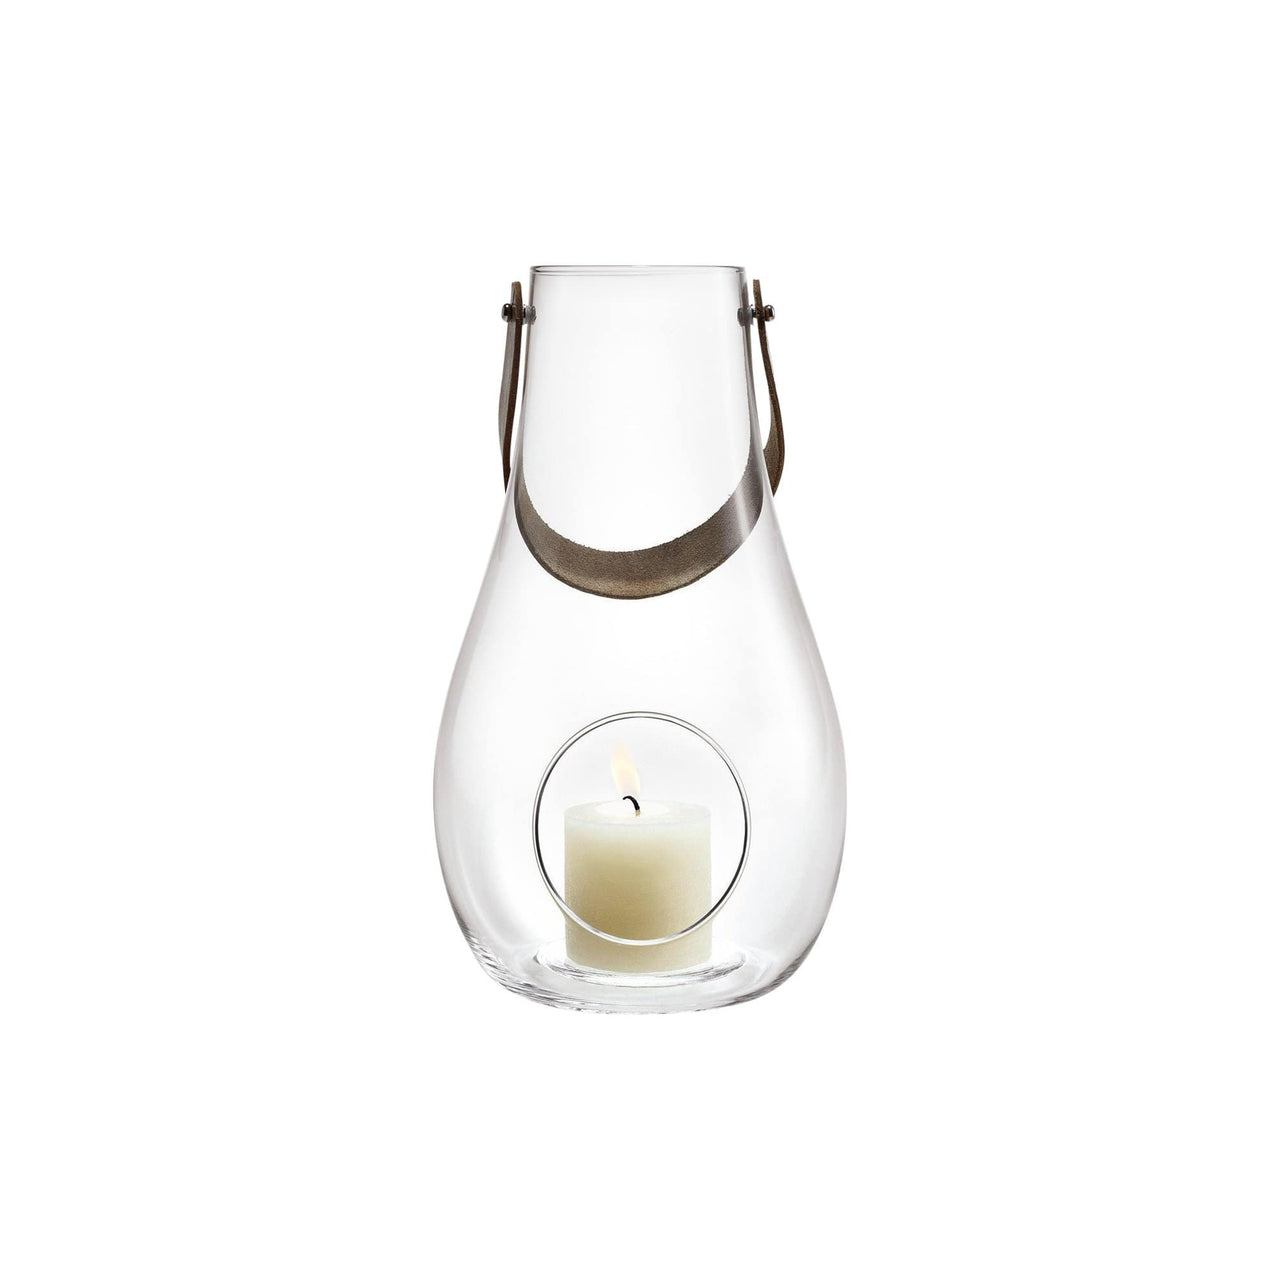 Holmegaard Decor Holmegaard Design with Light Lantern, 17.7""